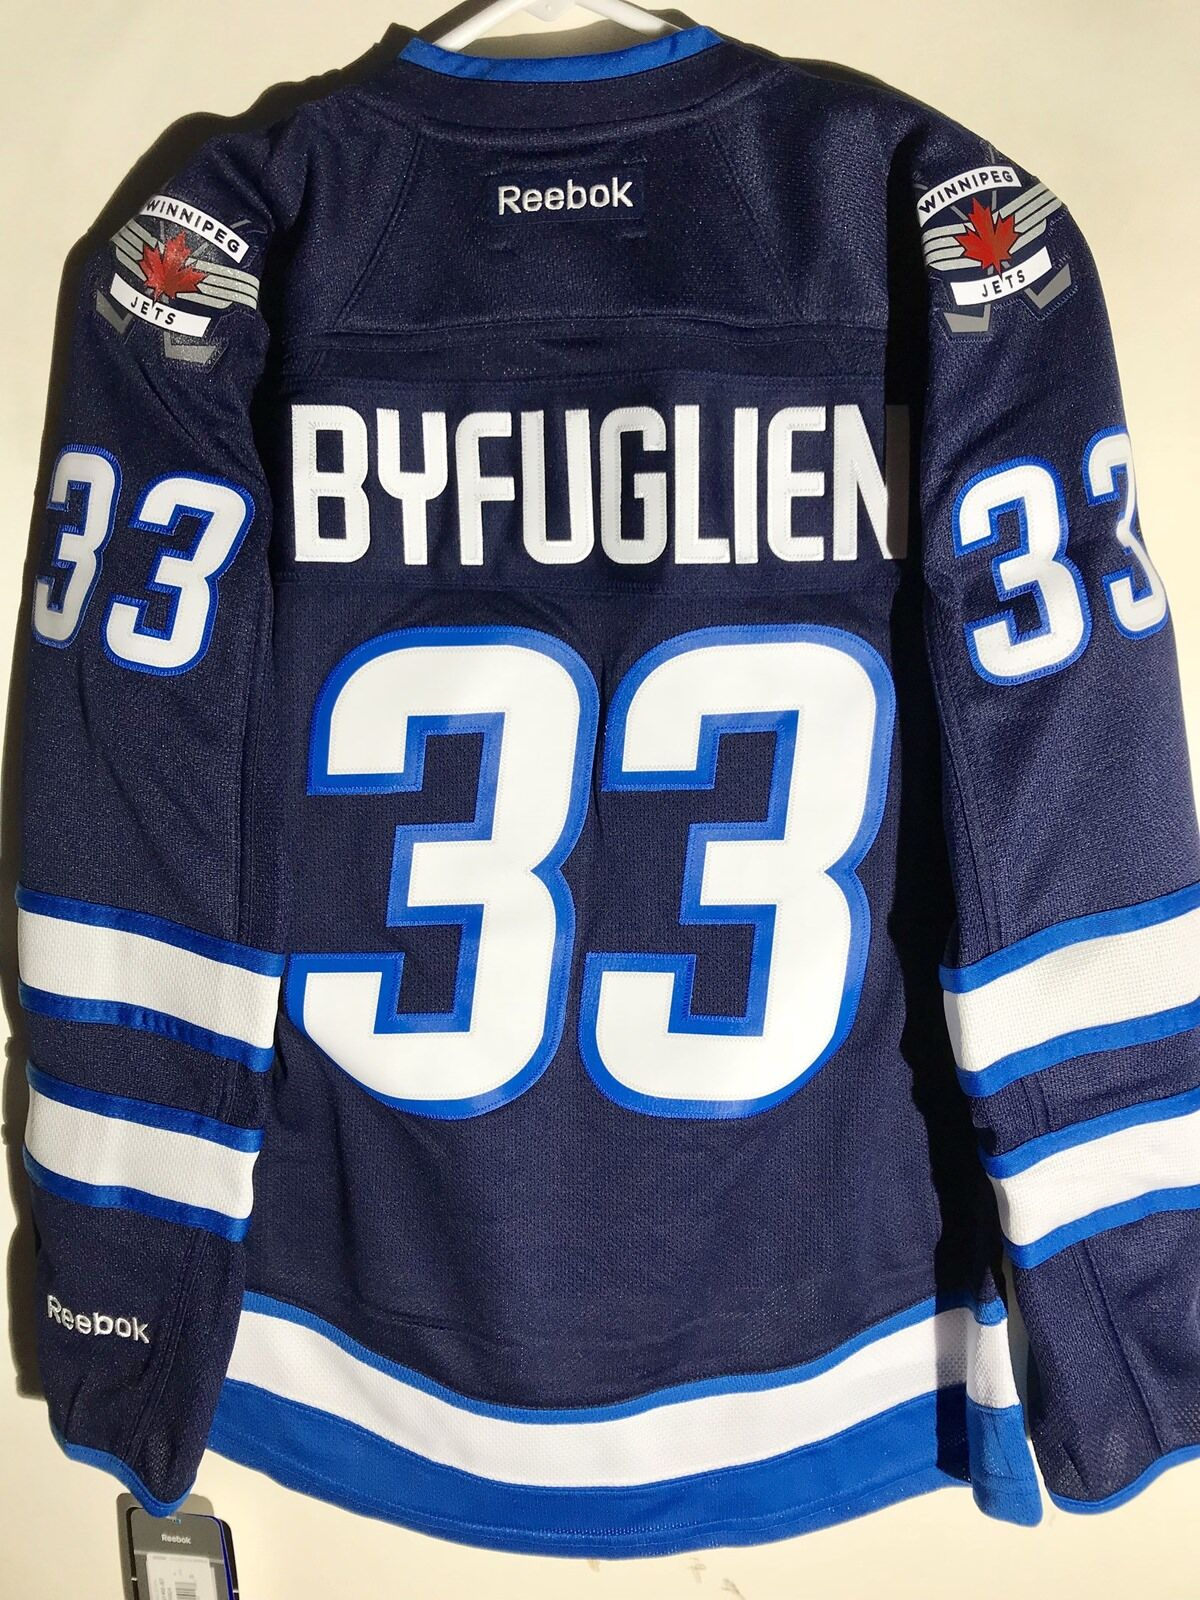 buy cheap a4f30 cff47 Reebok Women's Premier NHL Jersey Winnipeg Jets Dustin Byfuglien Navy sz L